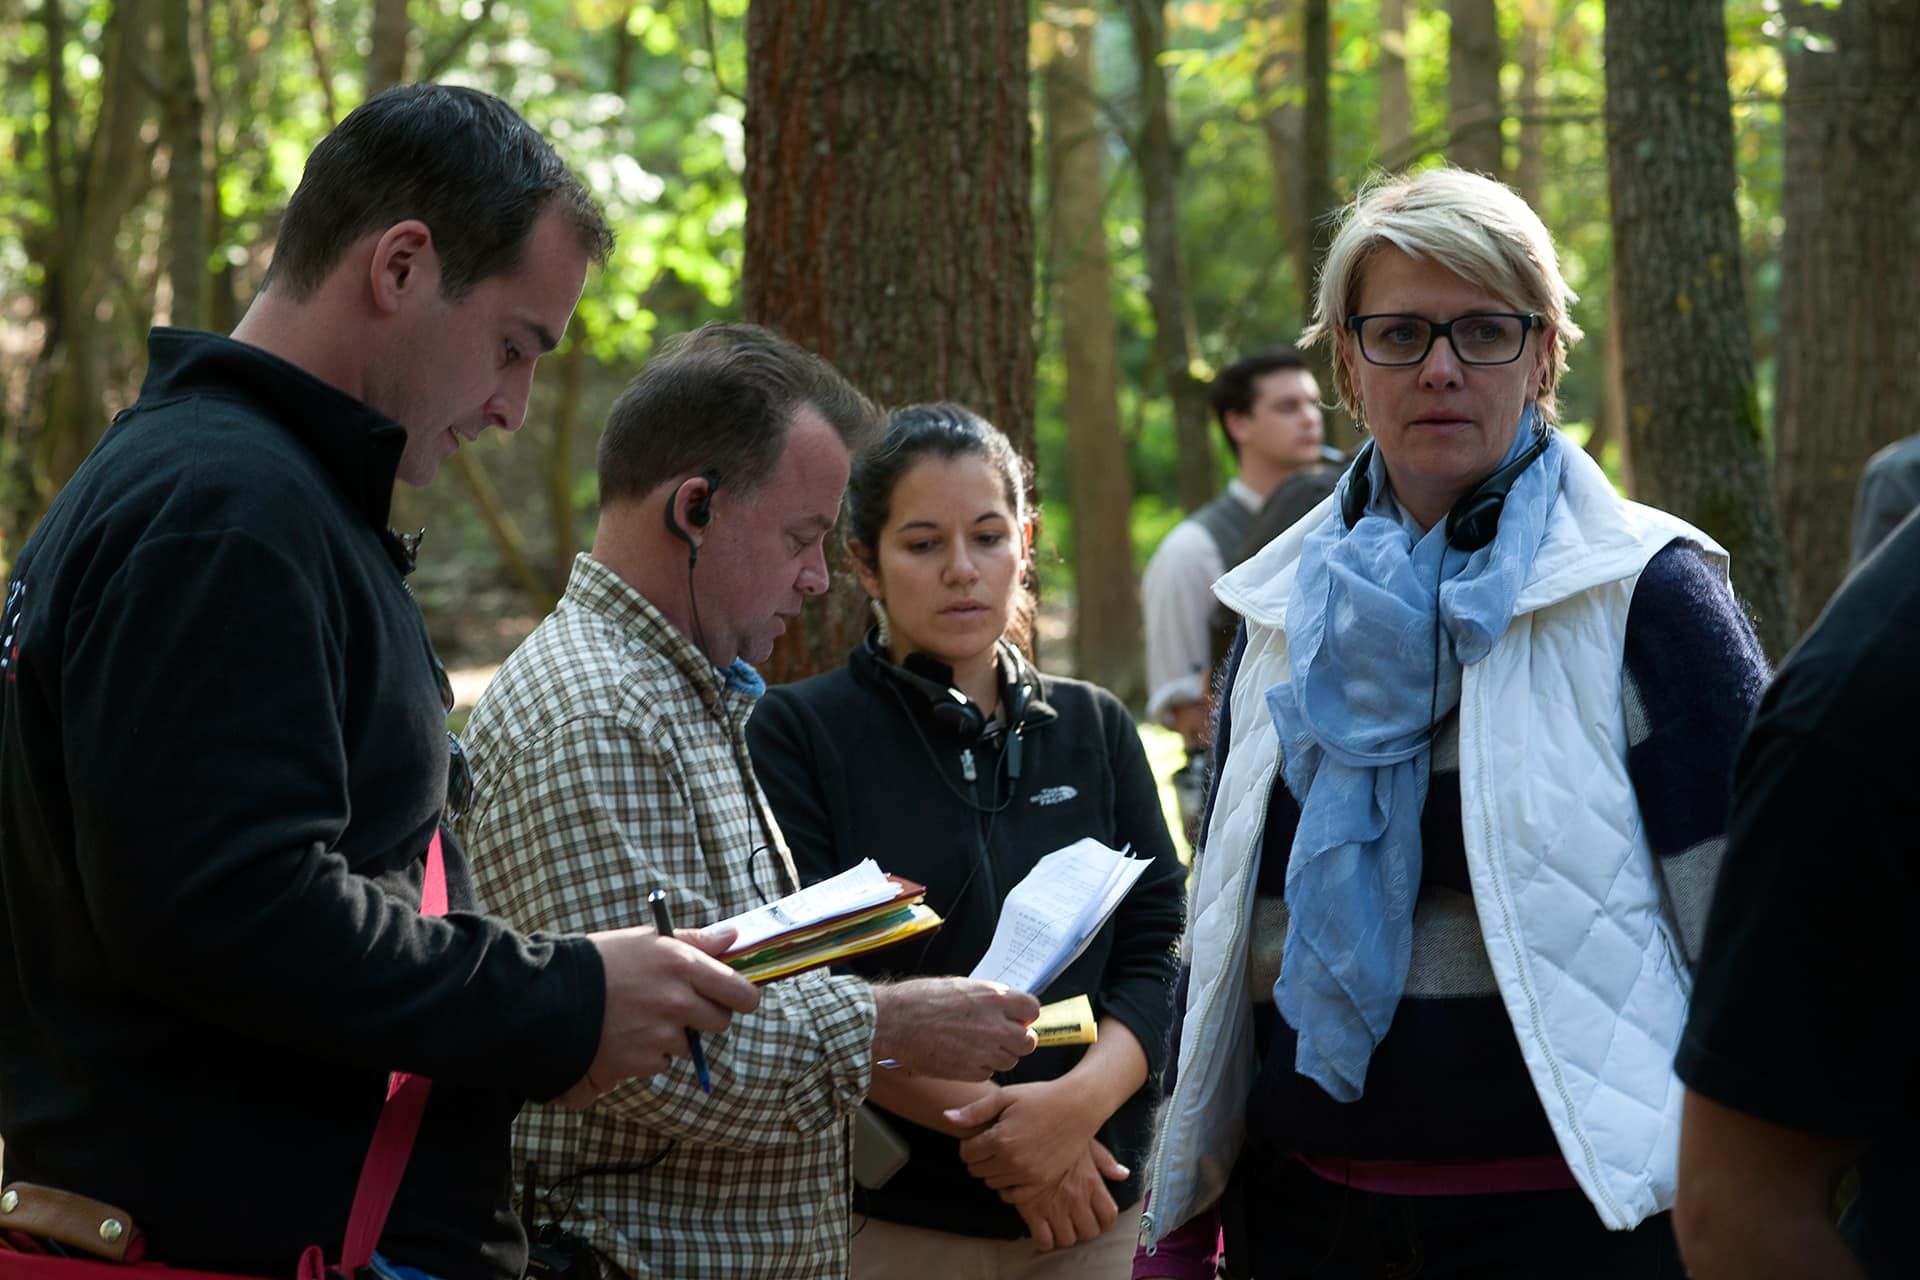 Director Amanda Tapping and the AD team including Marcel Saumure, Nicholas Vandal and Emese Matuze on the set.